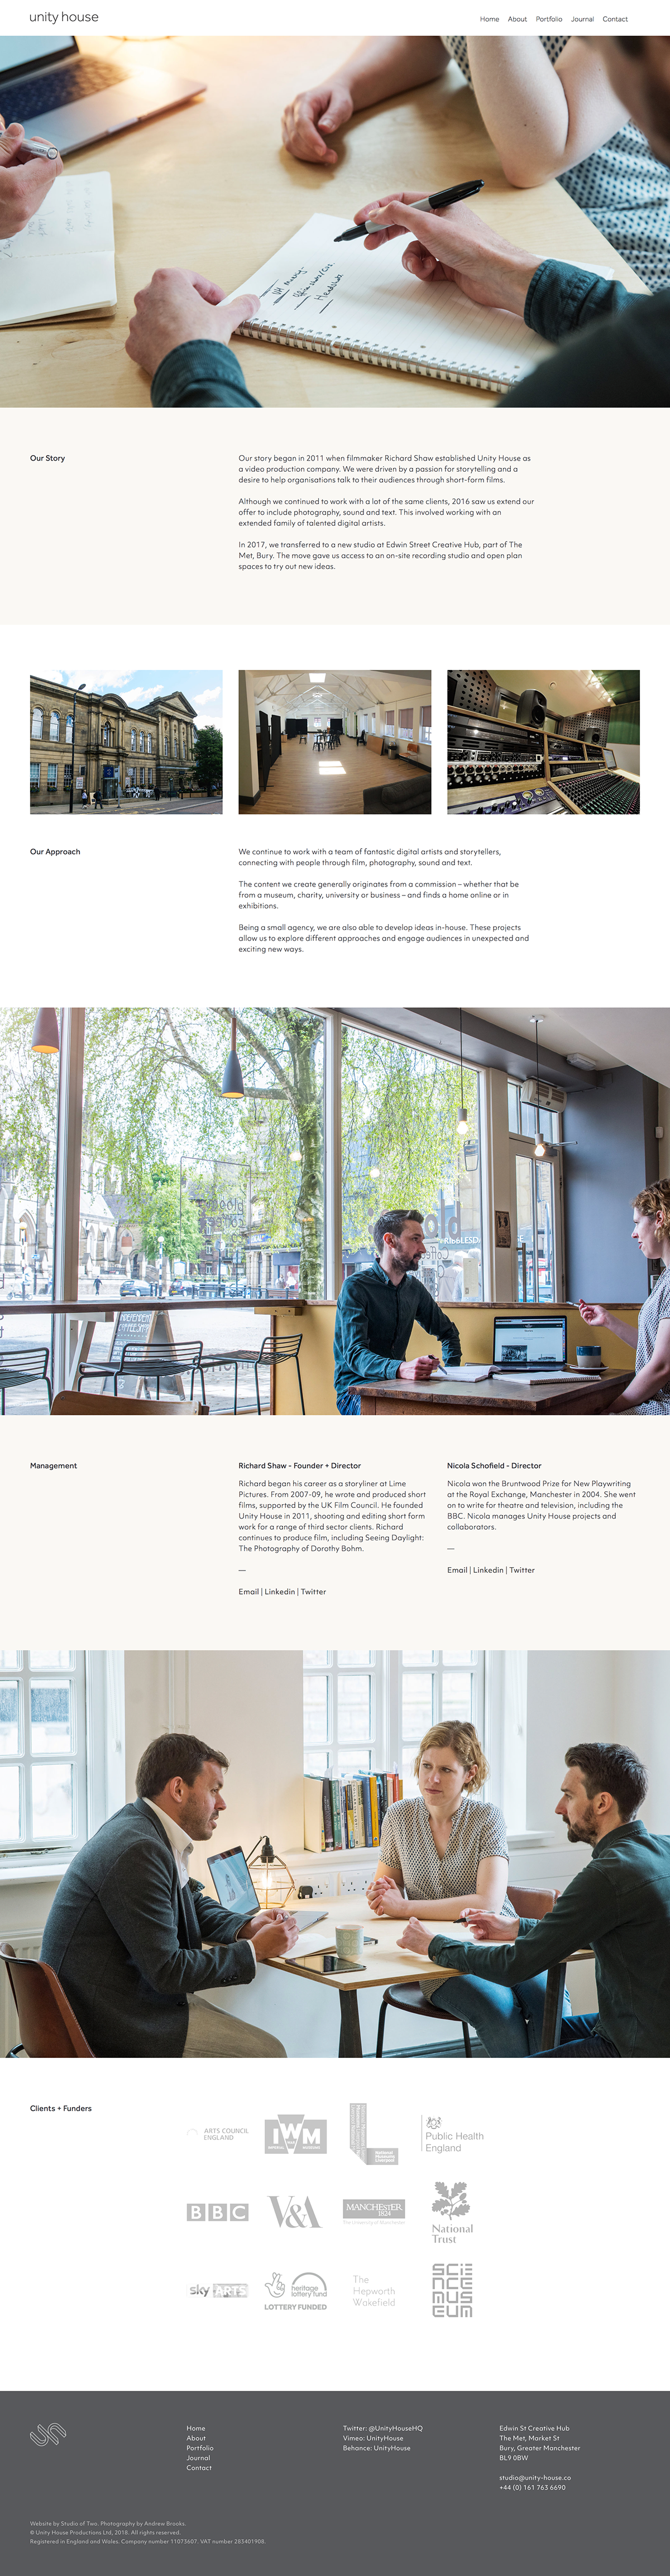 Unity House squarespace film production Story telling Website Web Design  grid based The Printer's Son